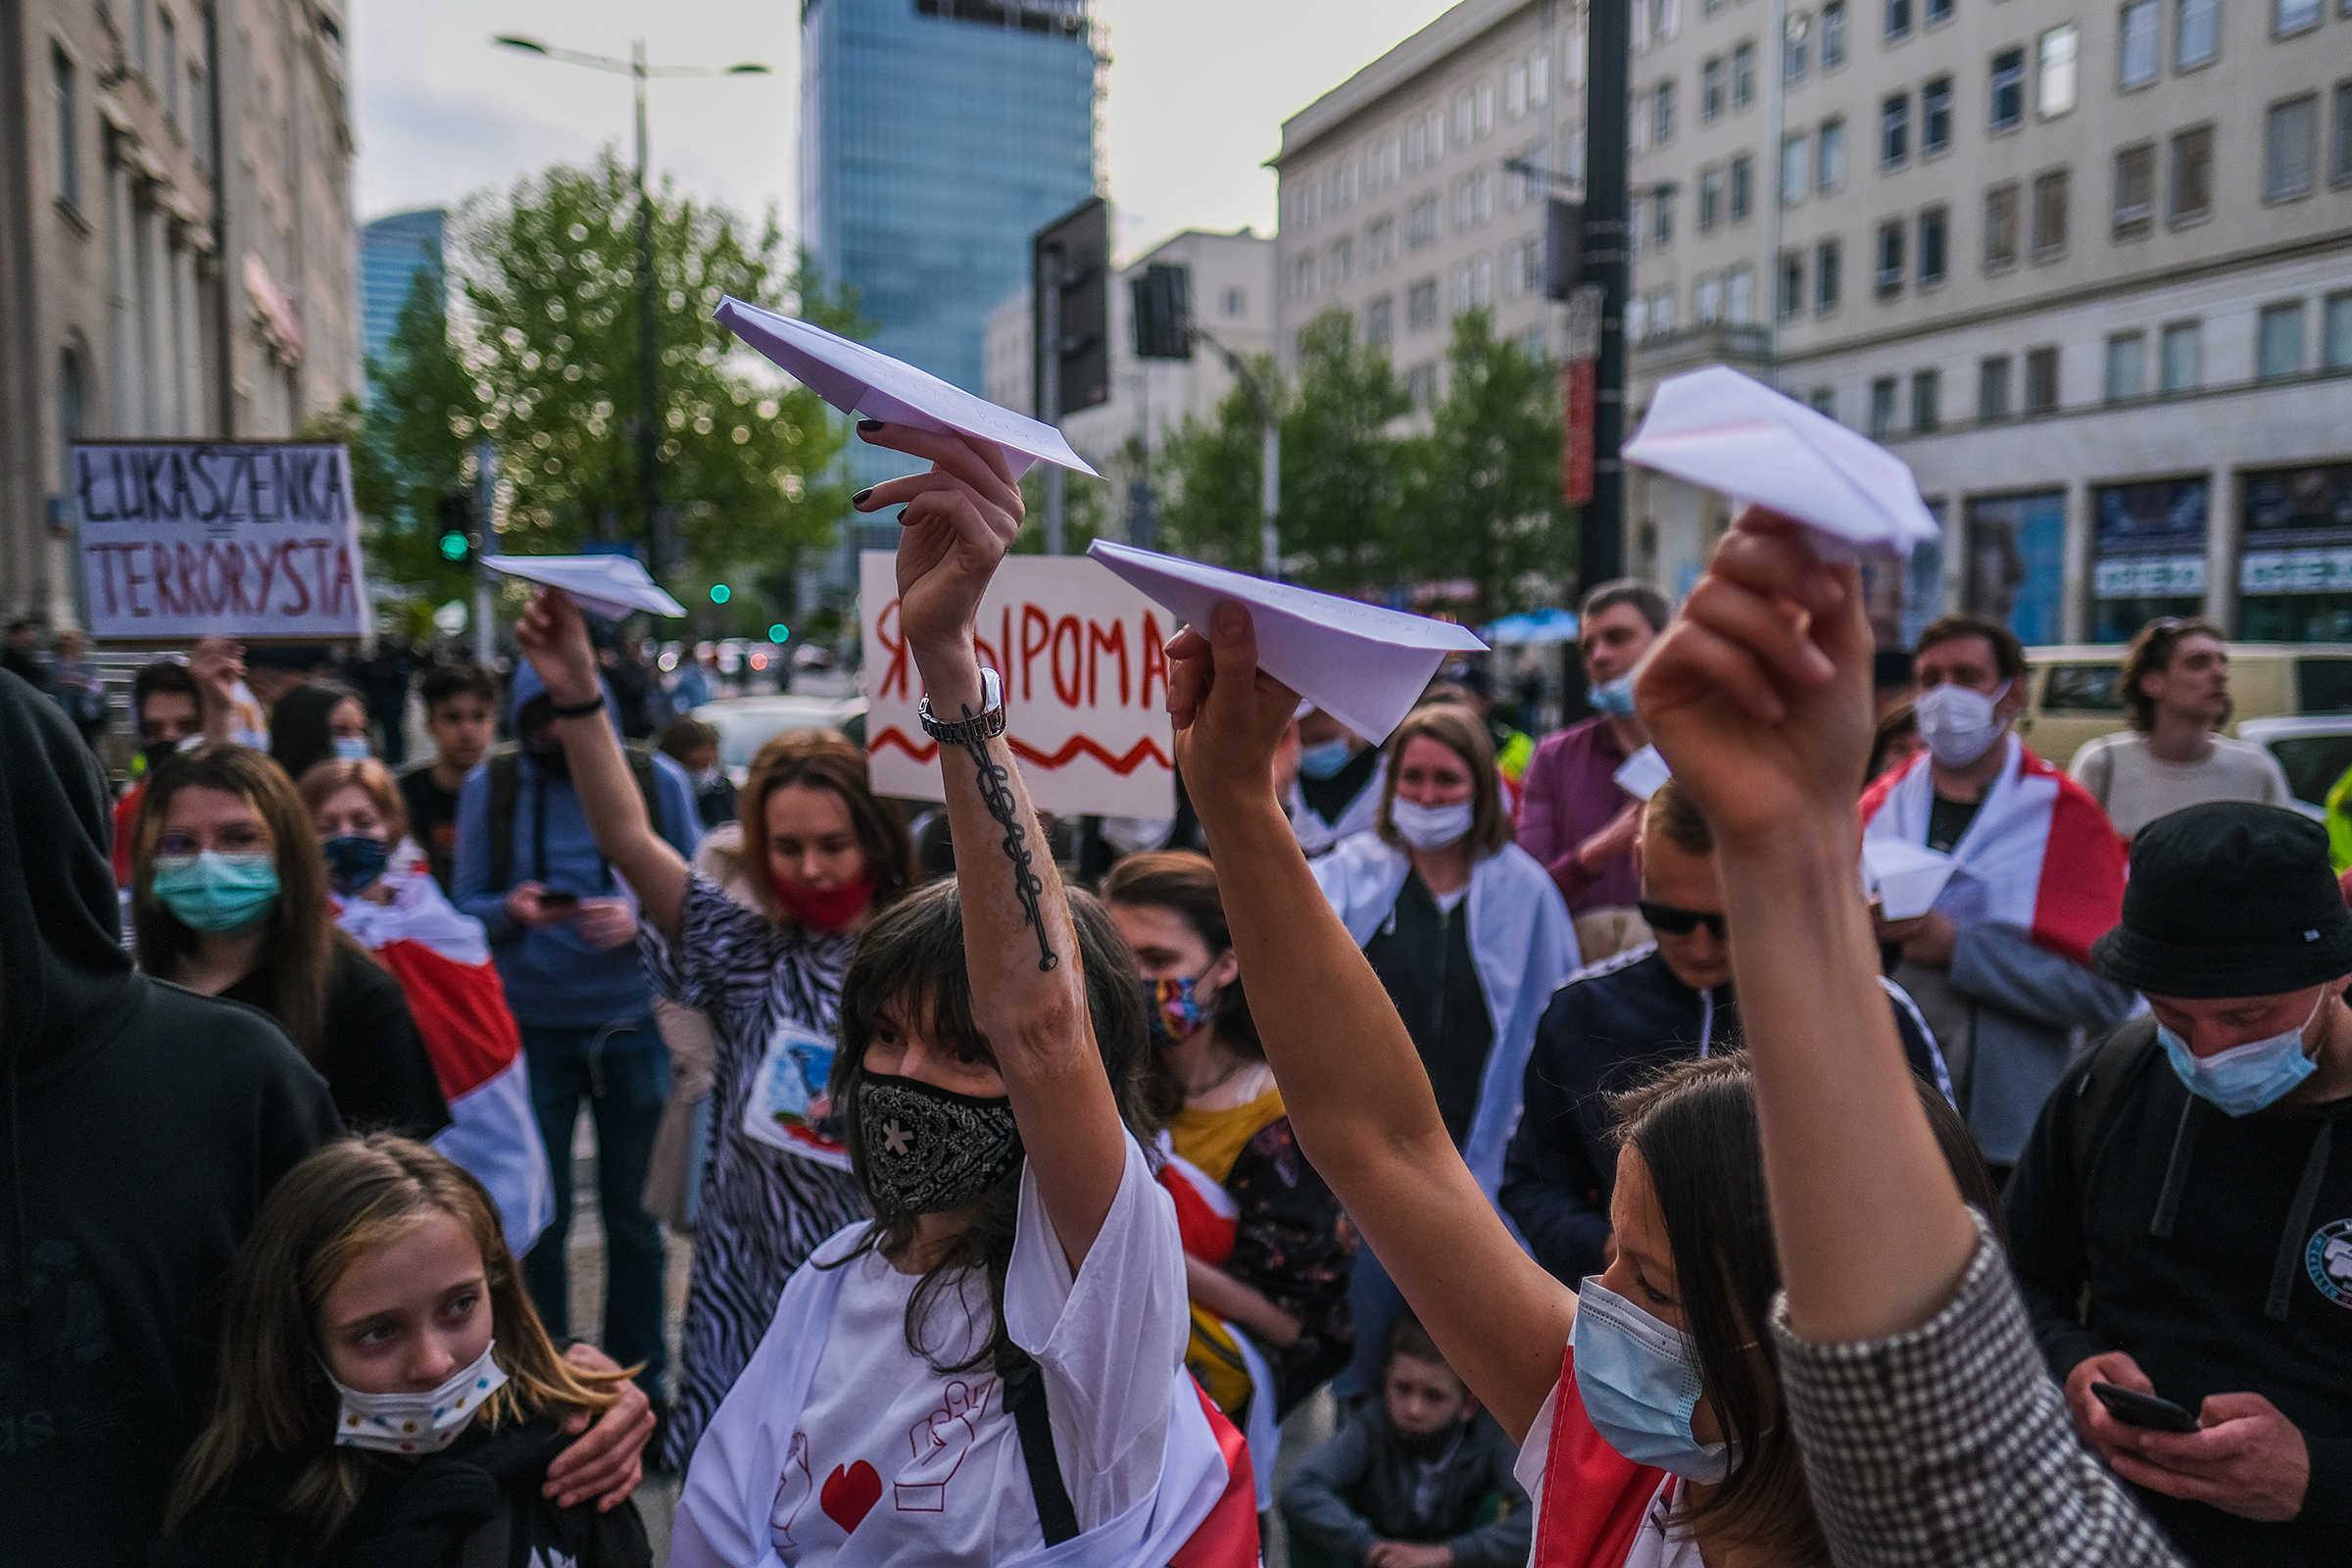 People hold paper airplanes during a protest in Warsaw on May 24 against the detention of Protasevich.